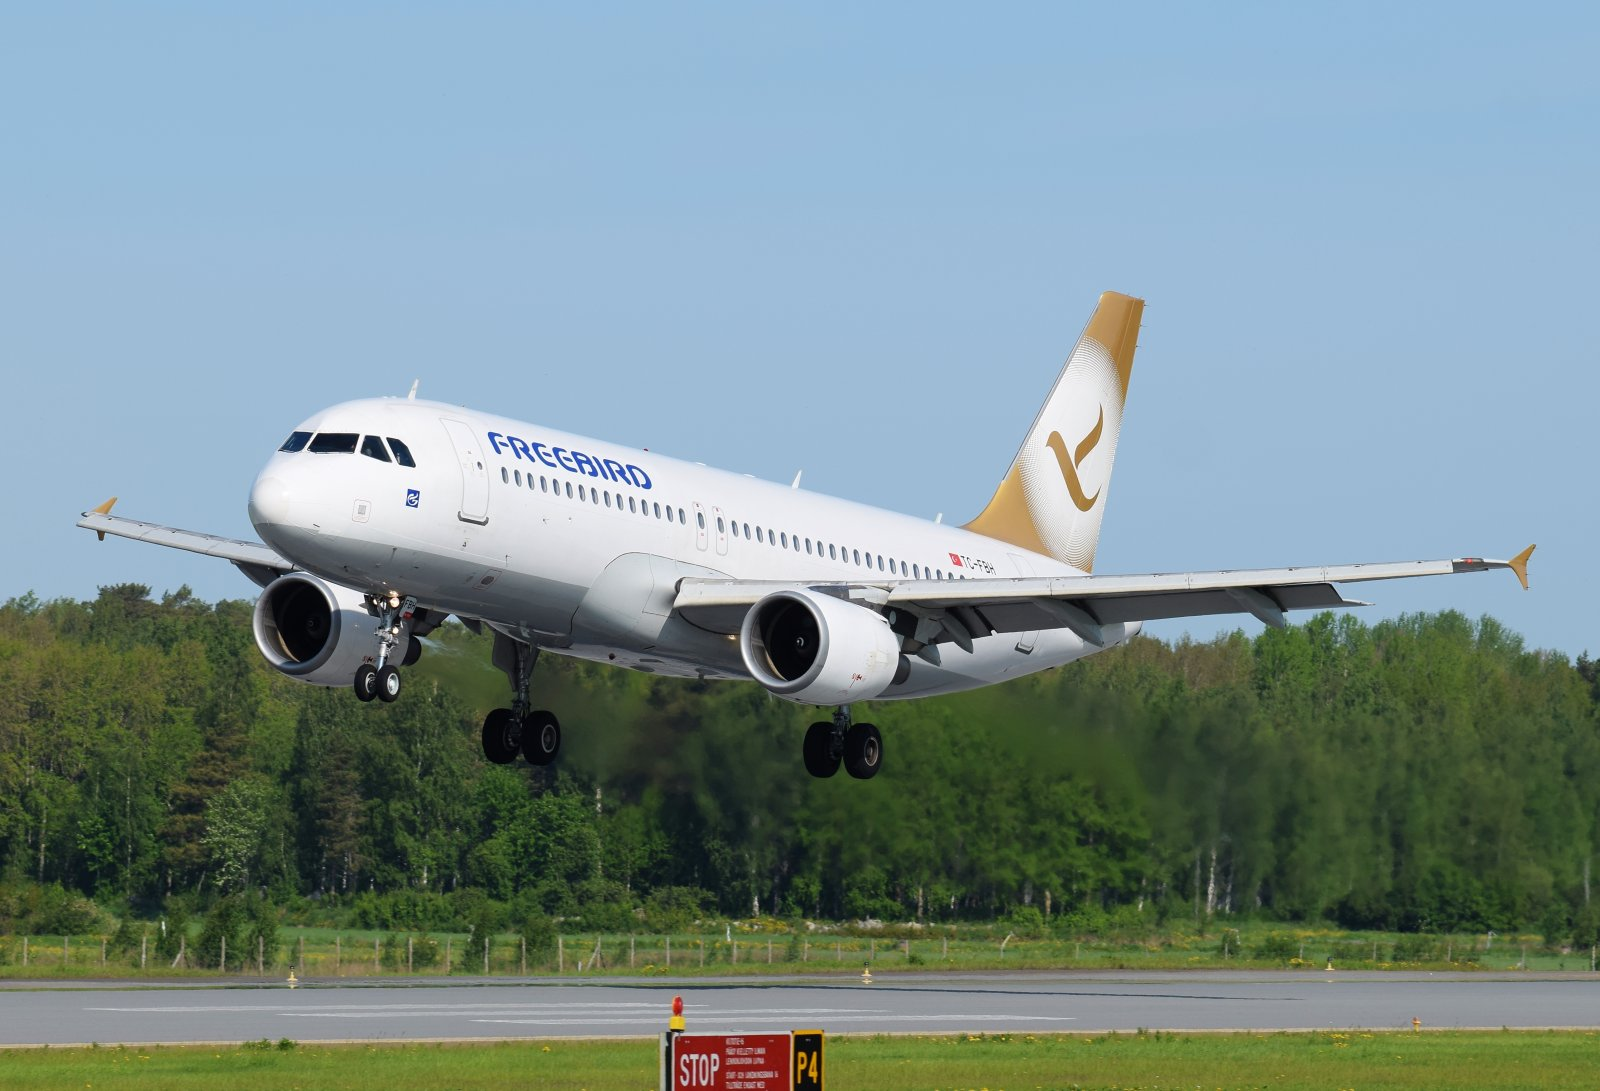 TC-FBH - Airbus A320-214 - Freebird Airlines - 5.6.2019